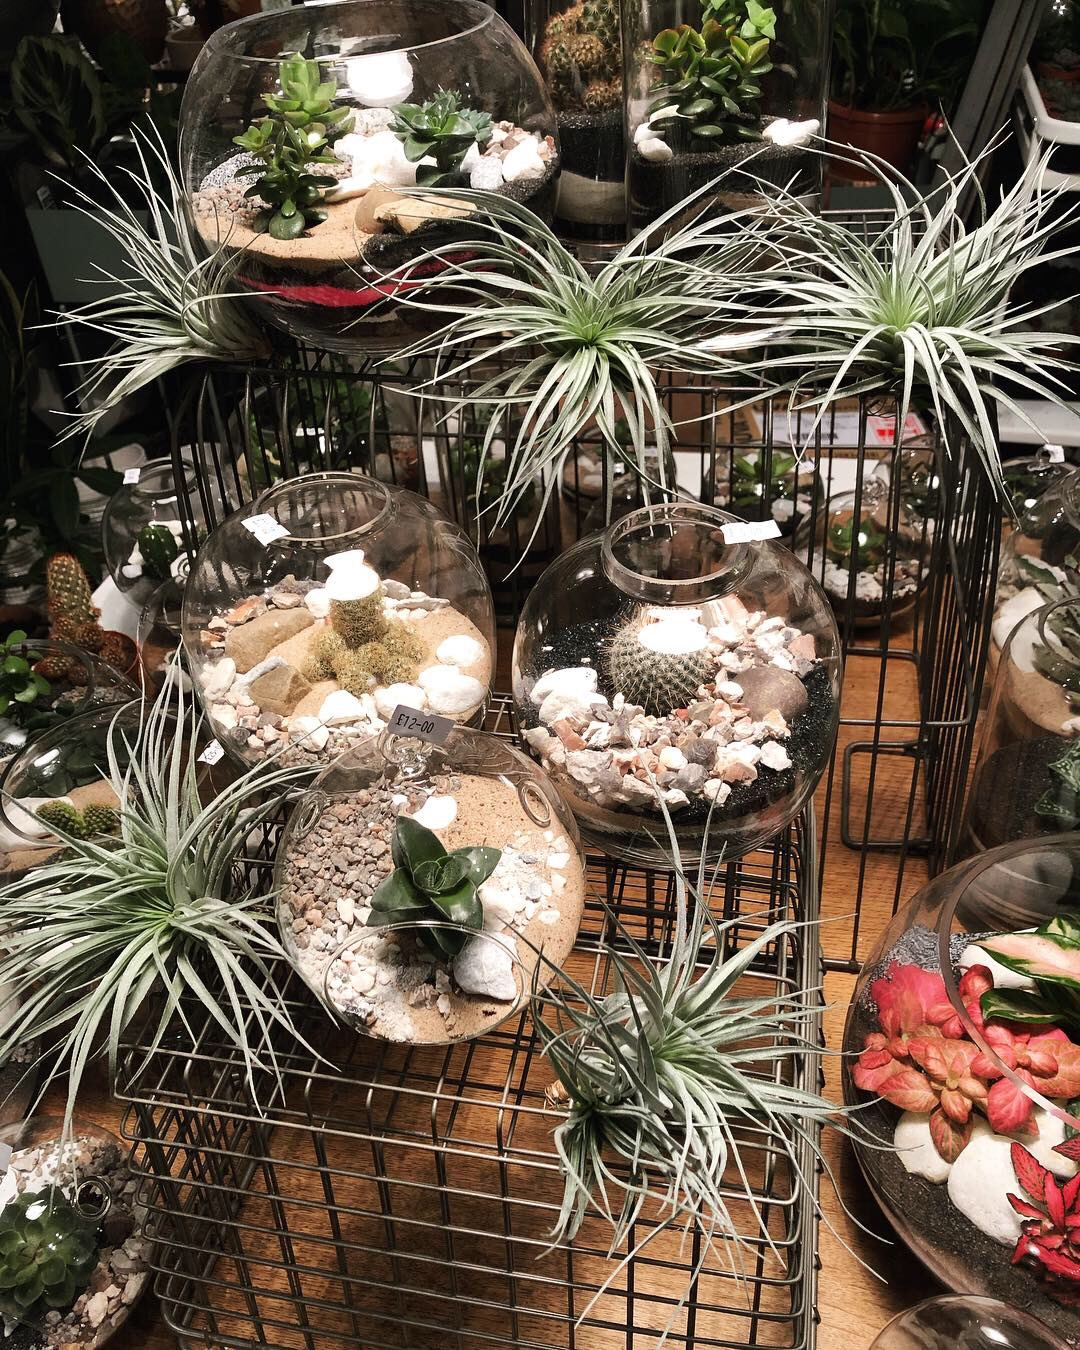 Tillandsia Air Plants in our shop for sale amongst our terrarium display in London